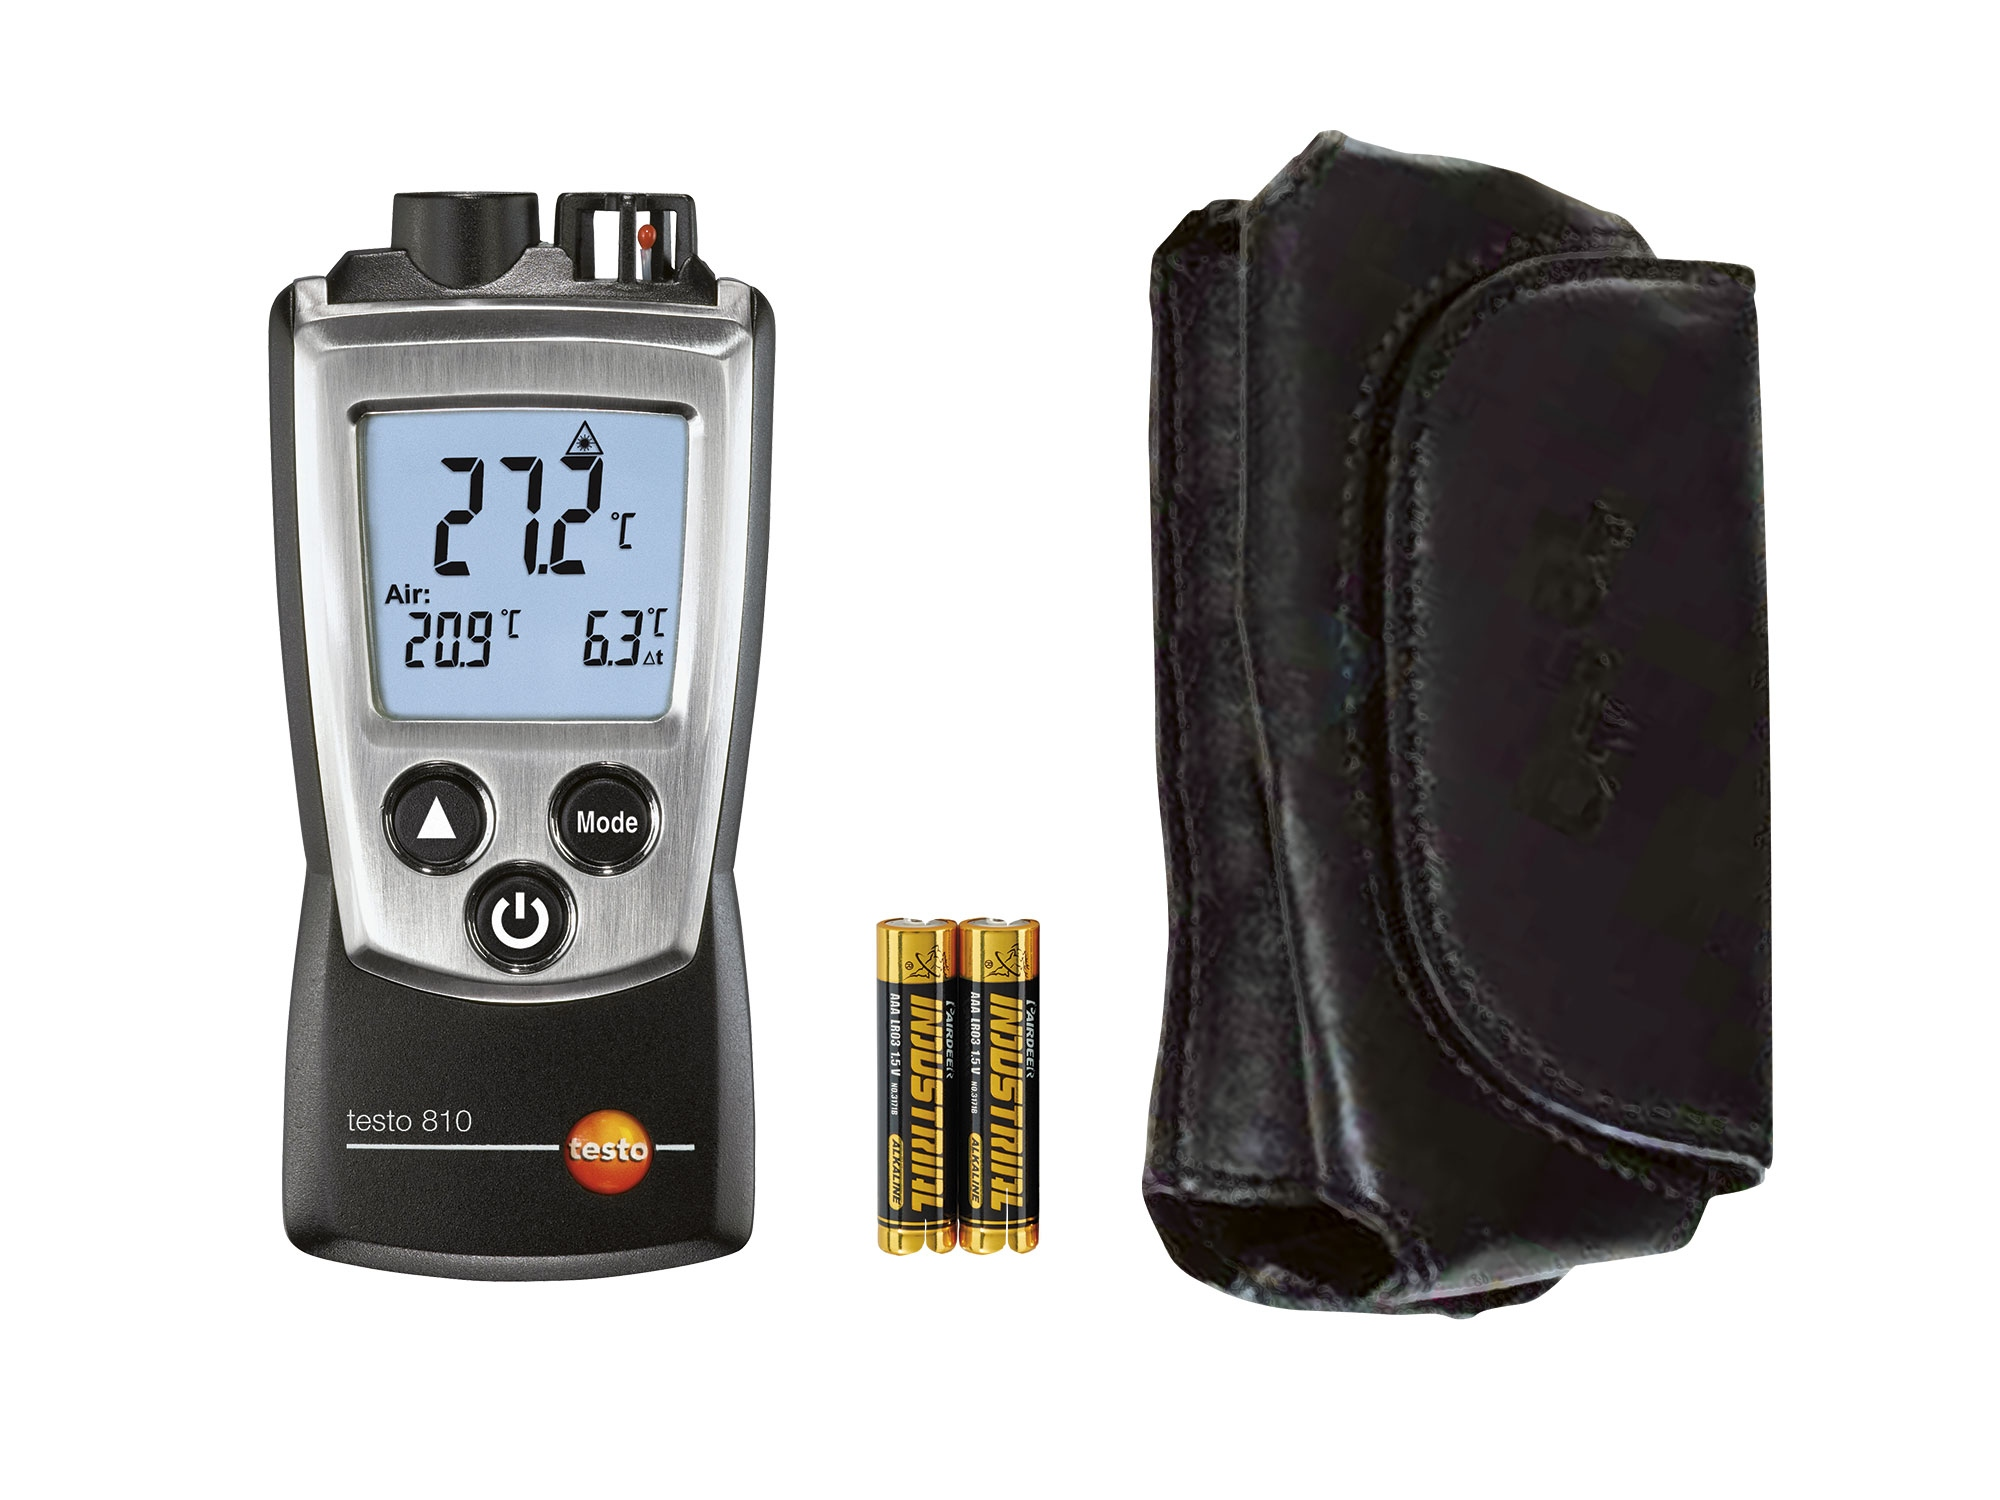 testo-810-set-infrared-thermometer-delivery-scope-free